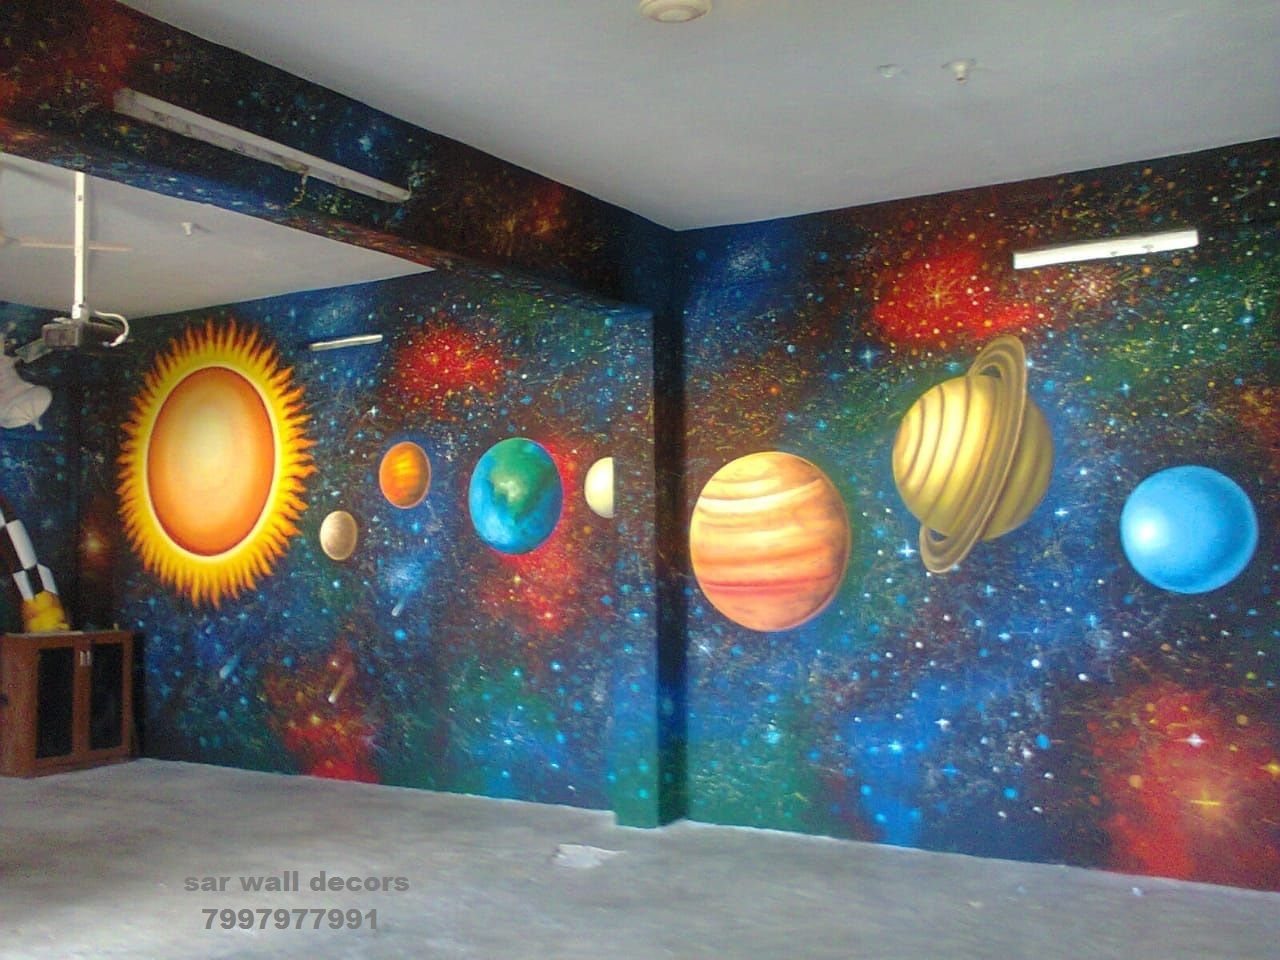 3d Wall Painting For Play School Wall Painting For School Office